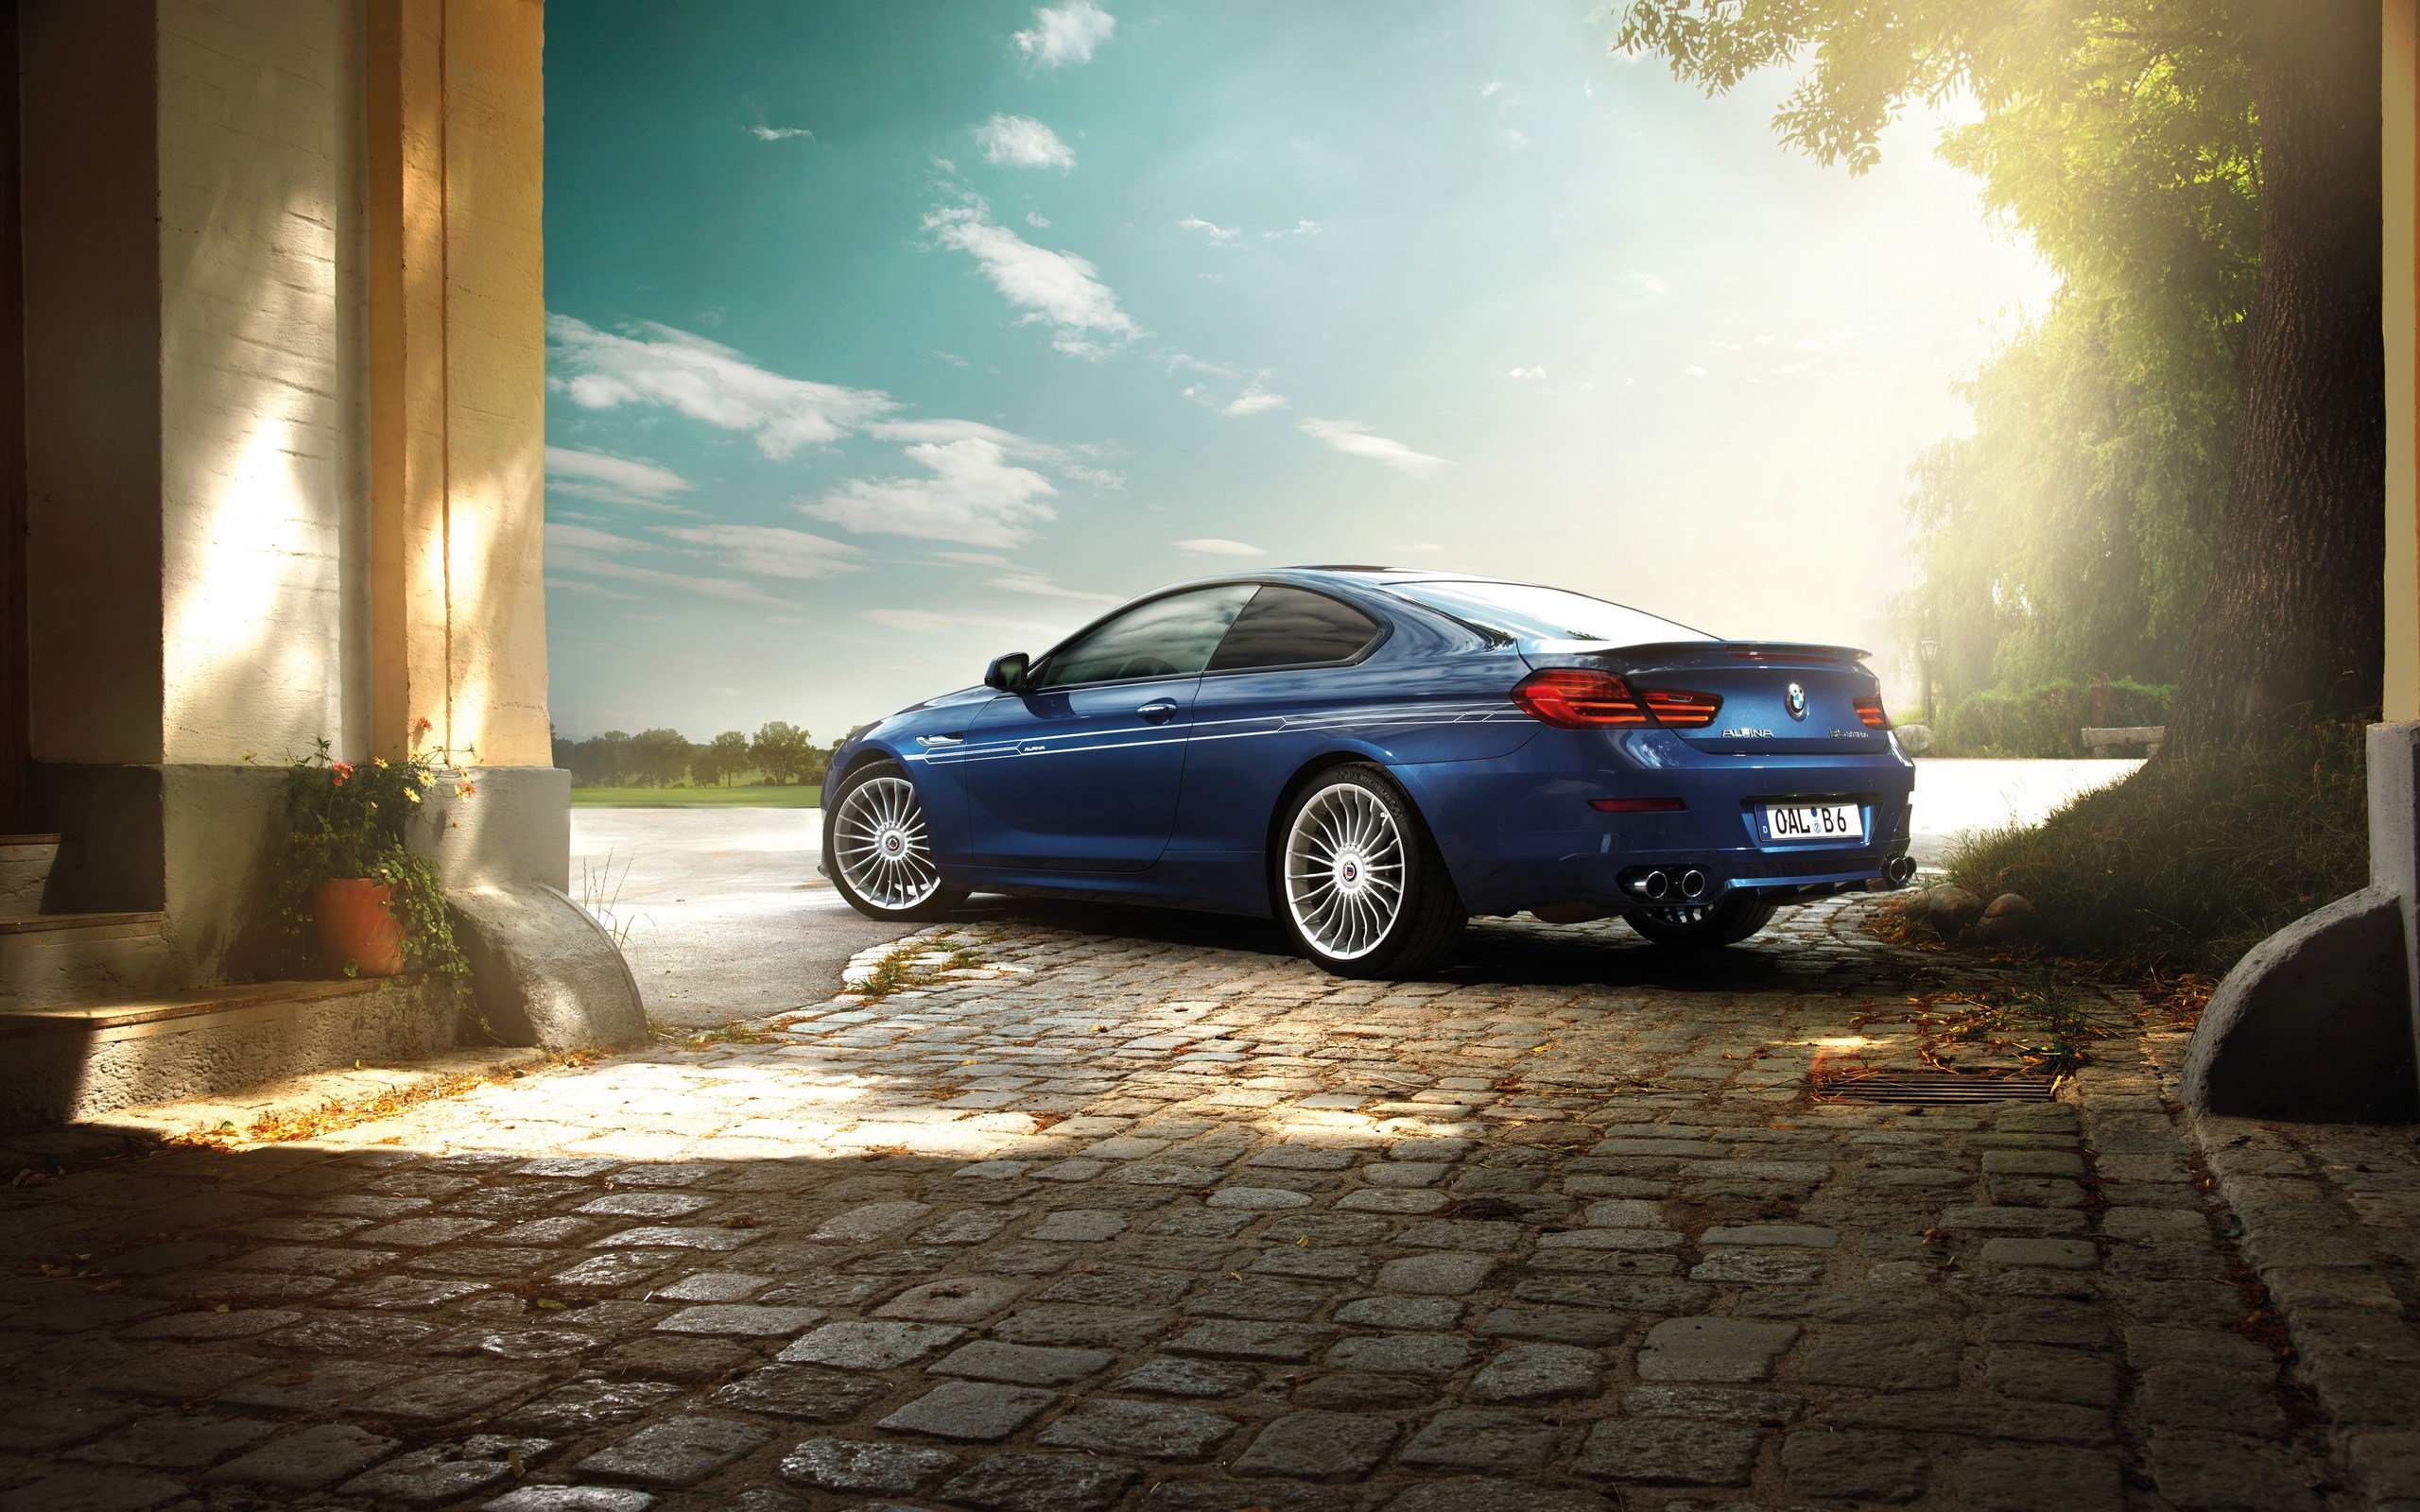 Latest 2013 Bmw Alpina B6 Biturbo 2 Wallpaper Hd Car Wallpapers Free Download